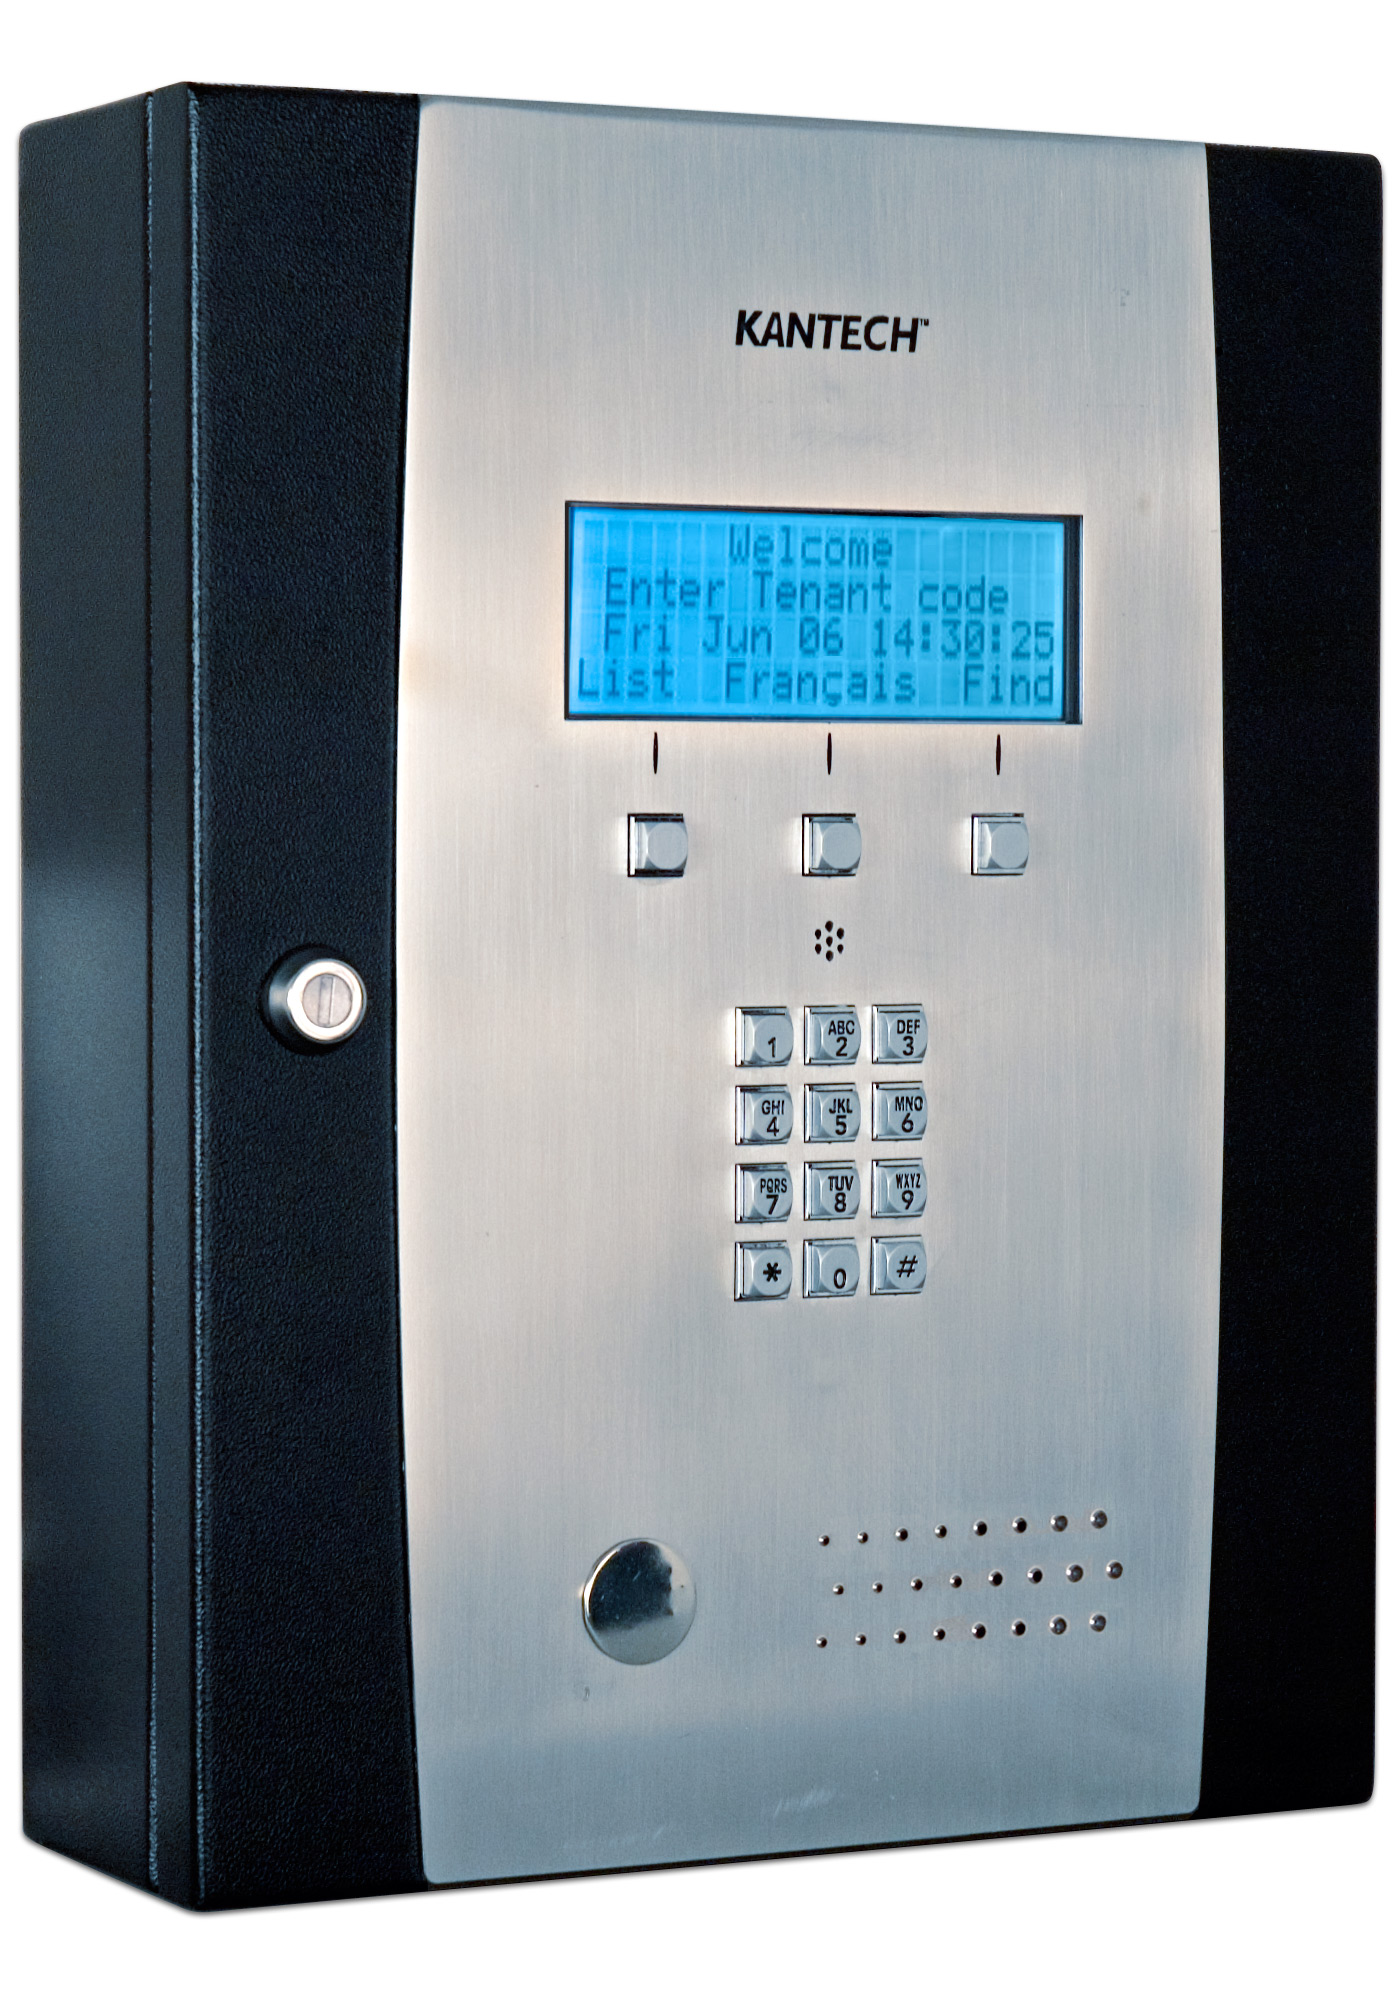 telephone-entry-system_p3_02_na_v